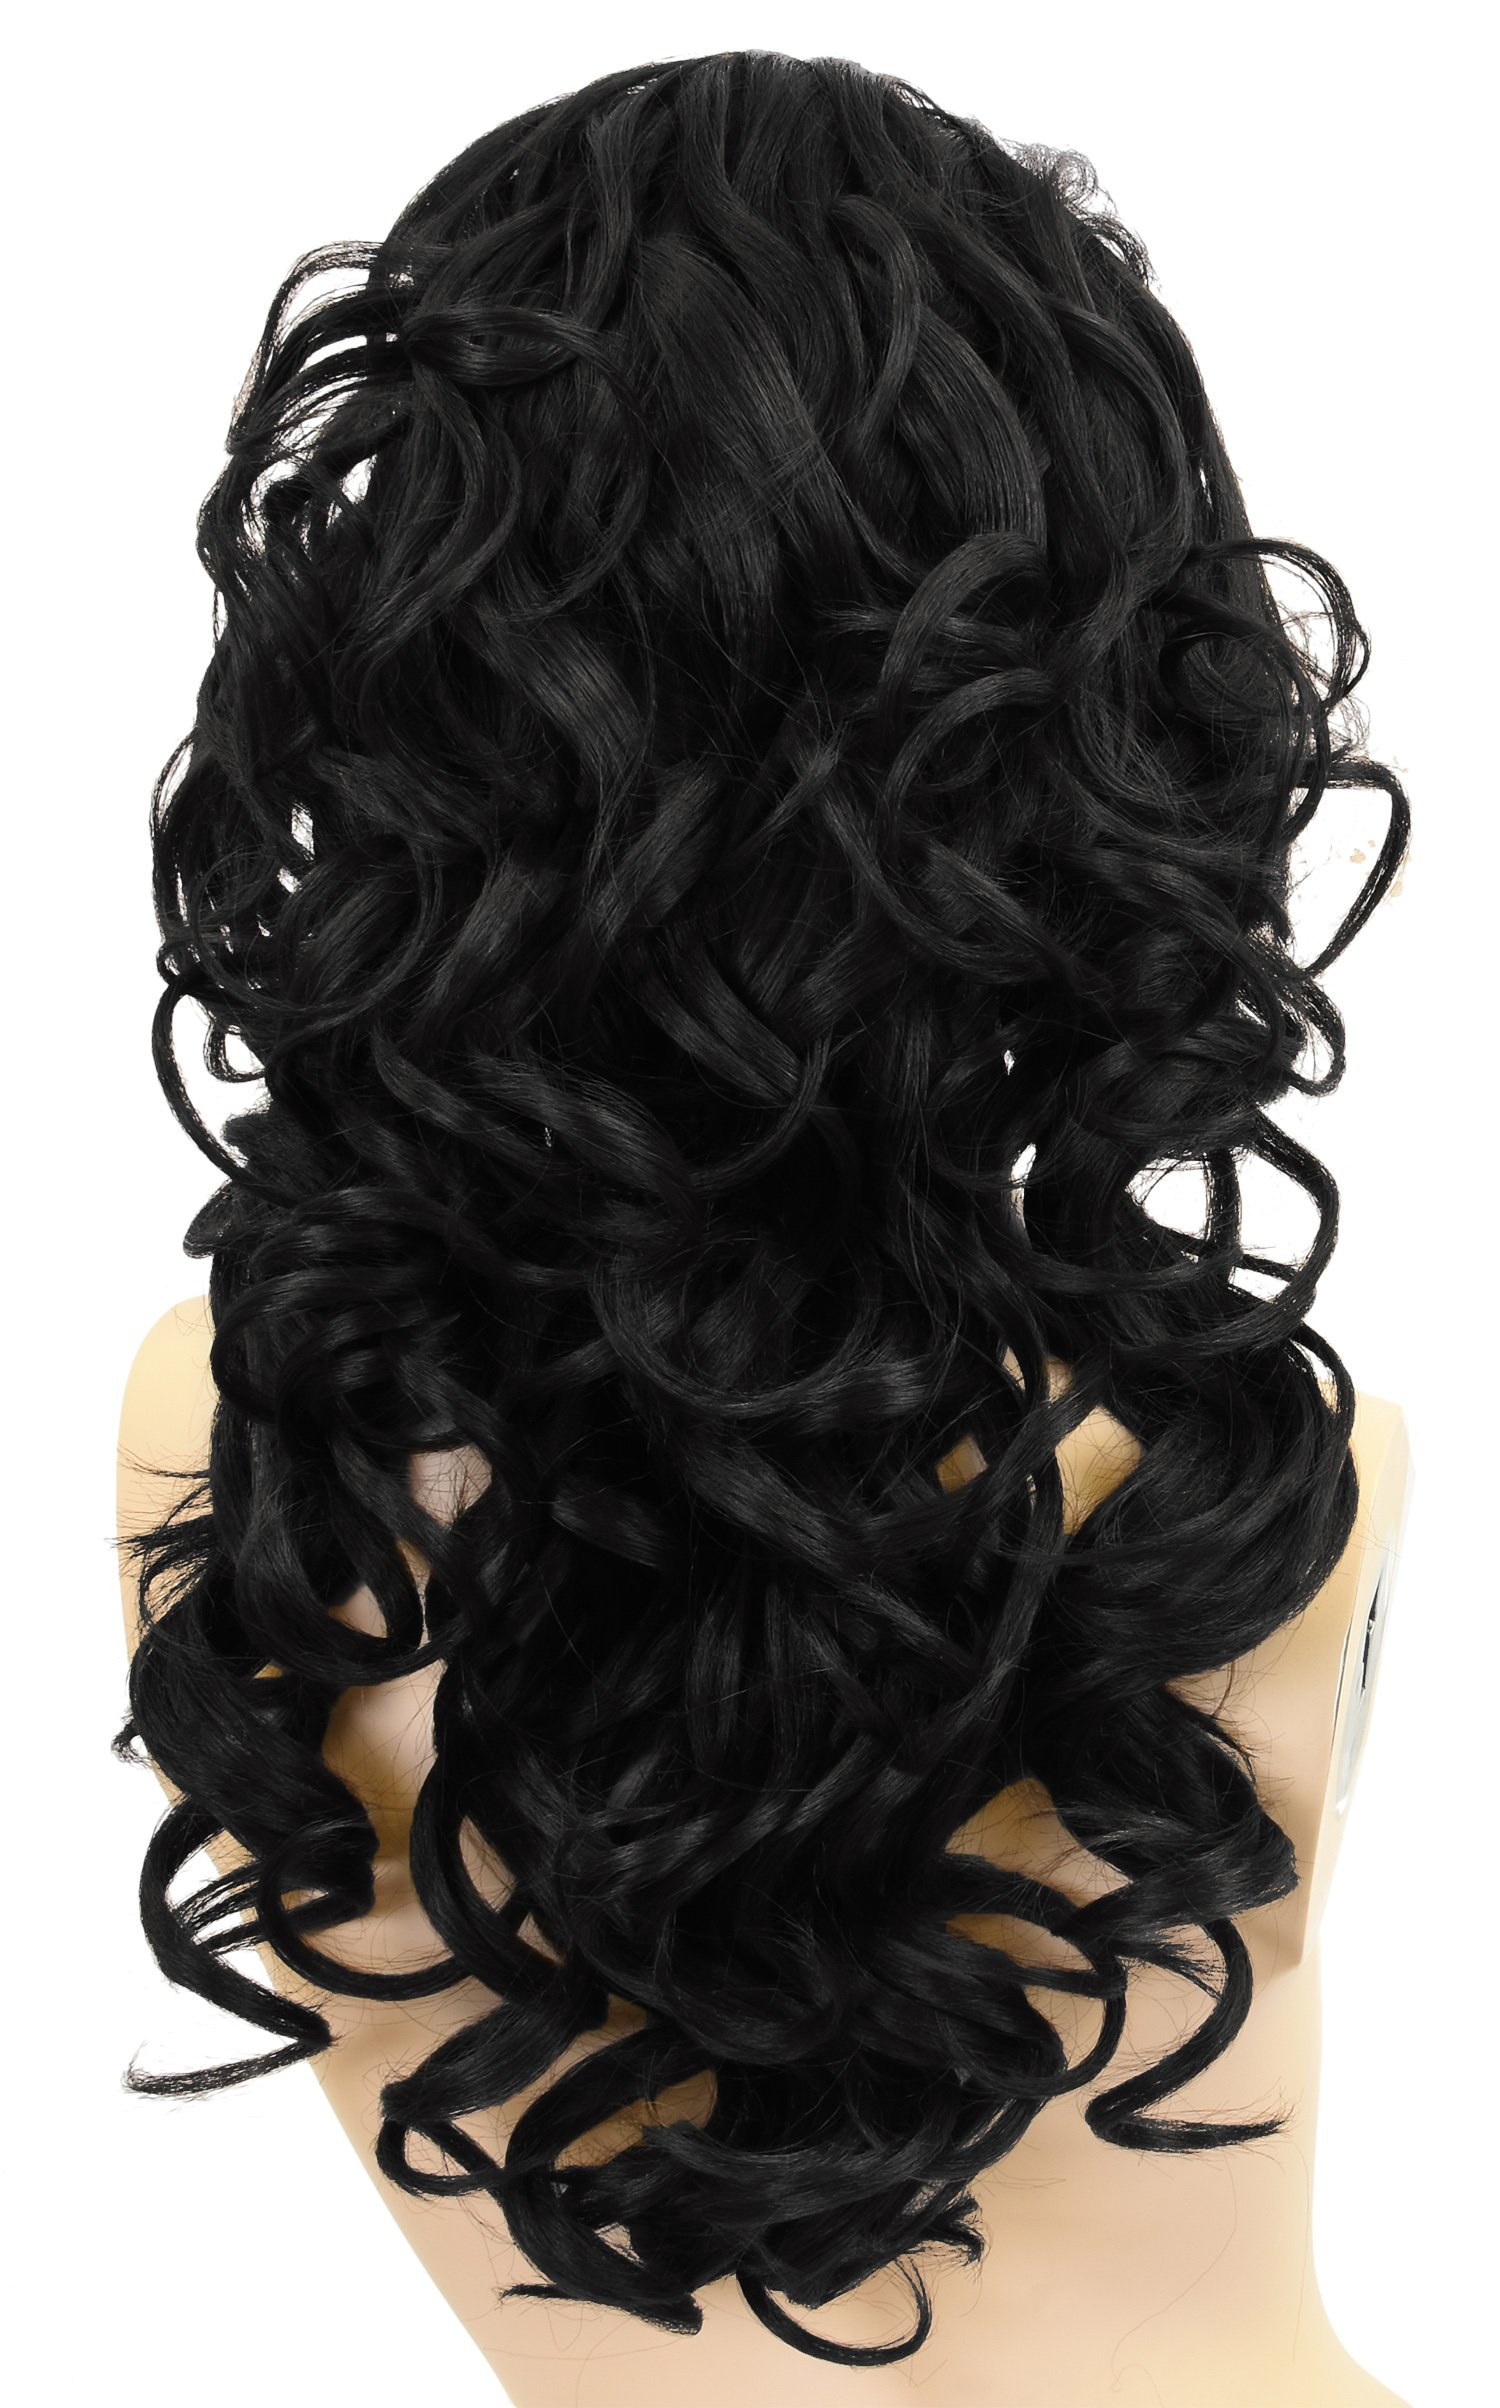 Long Curly Afro Lace Front Wig,African American Beauty Wigs,Synthetic Fiber Natural Looking Wave Hair Wig for Black Women